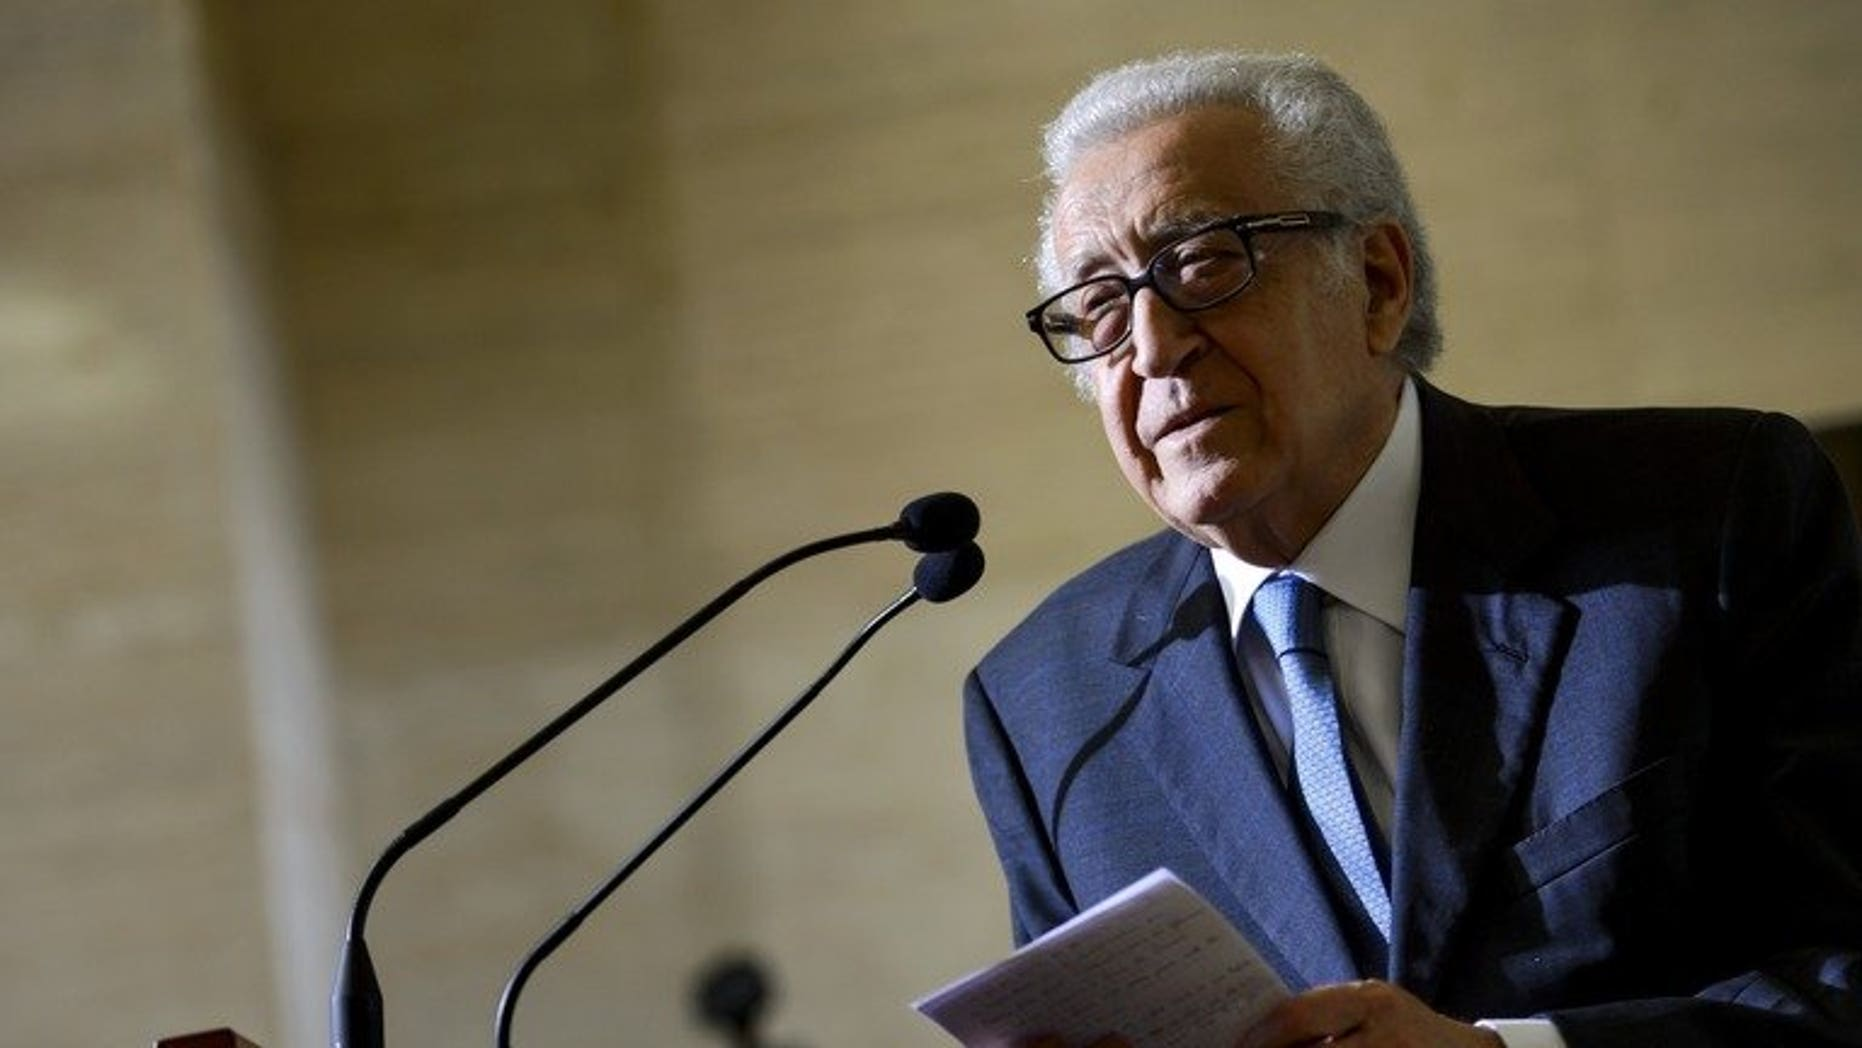 UN peace envoy to Syria Lakhdar Brahimi speaks during a press conference upon his arrival on June 25, 2013 at the United Nations (UN) office in Geneva. A widely anticipated peace conference for Syria will probably not take place next month as hoped, Brahimi said Tuesday.